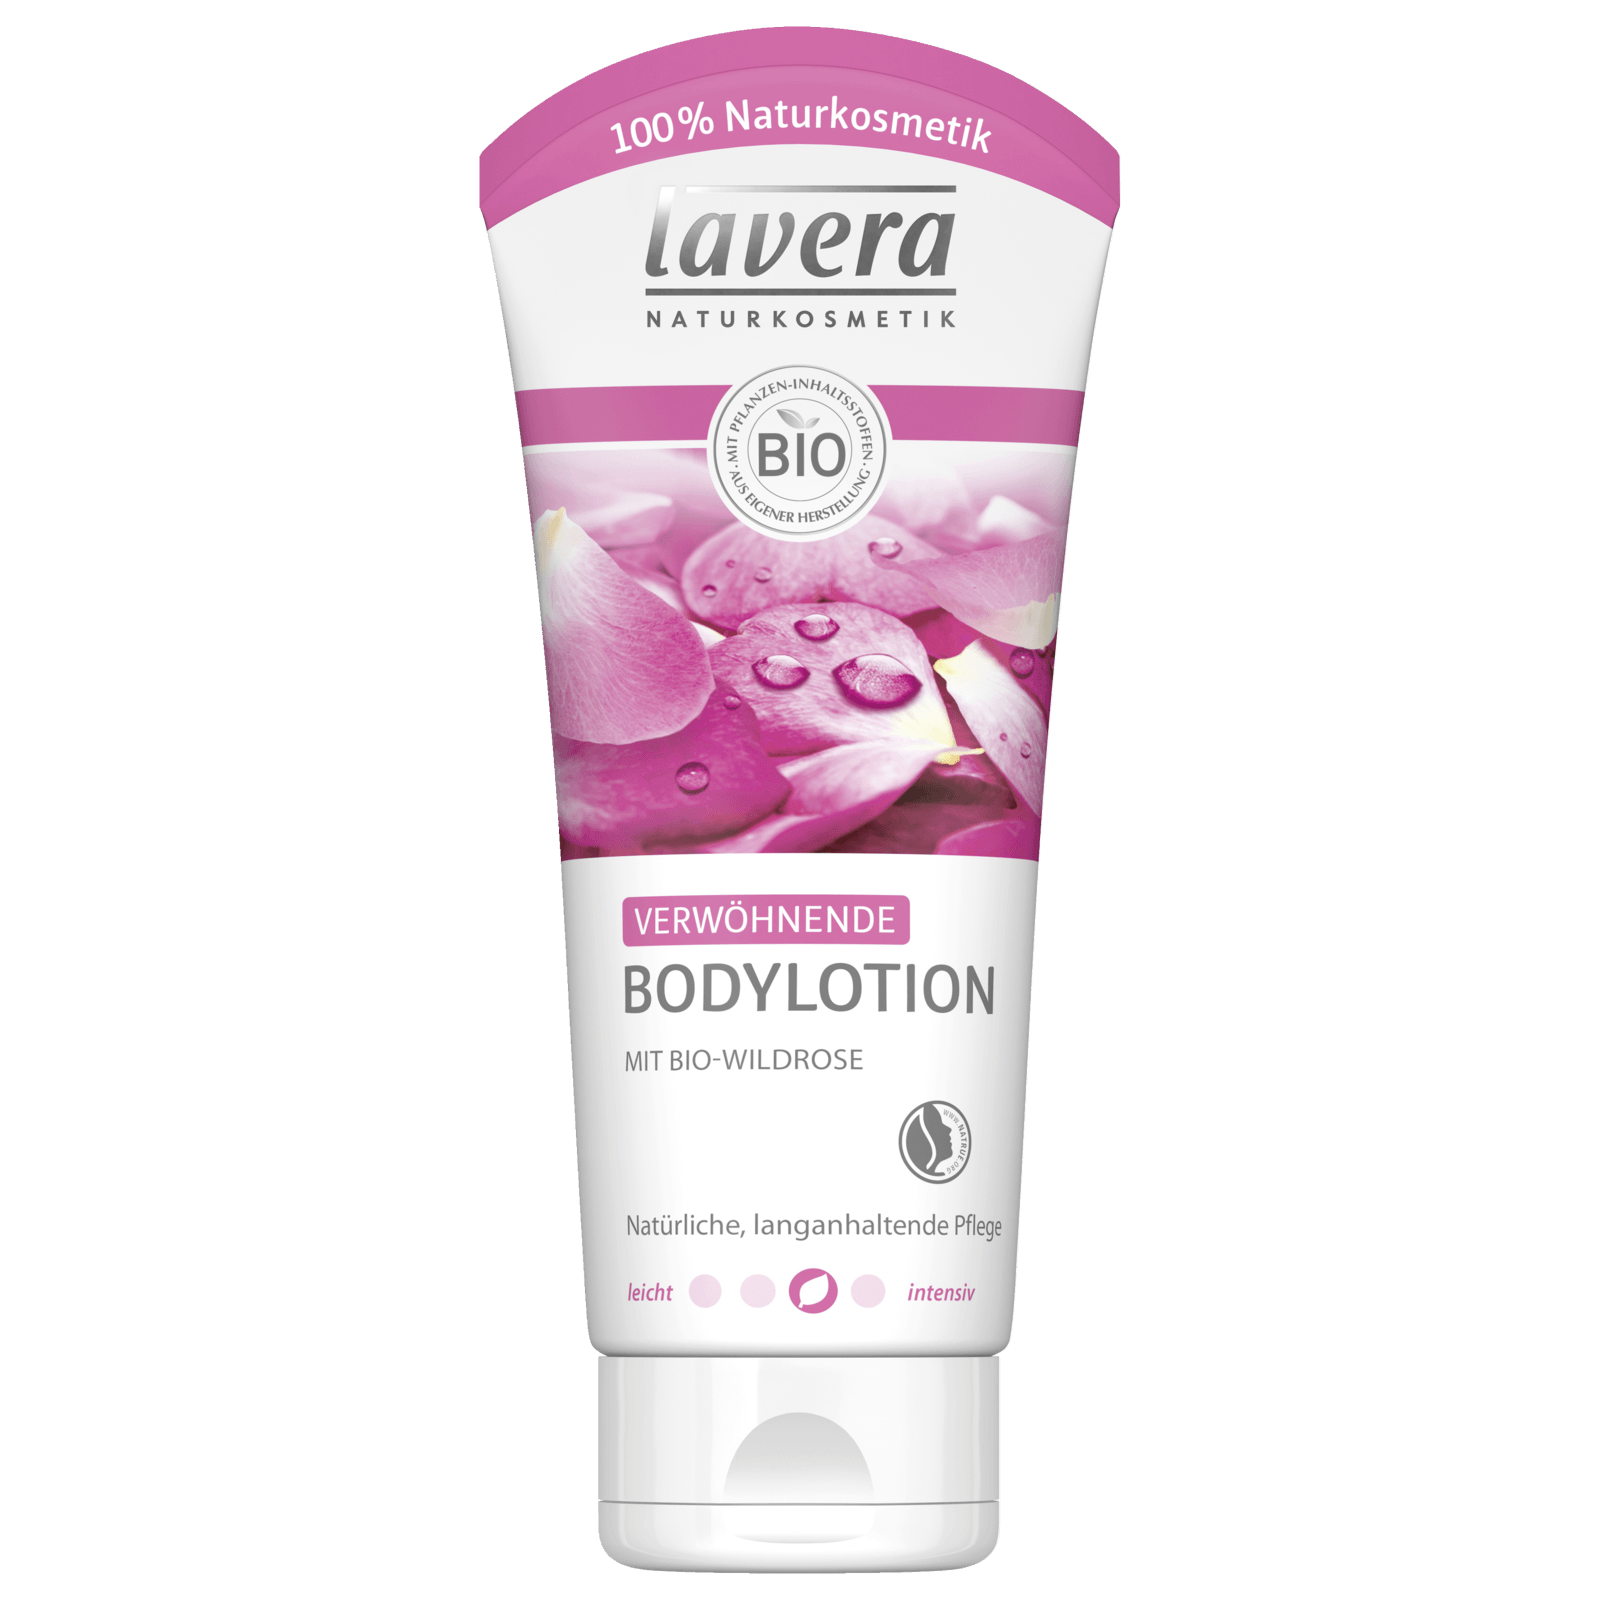 Lavera Bodylotion mit Bio-Wildrose 200ml